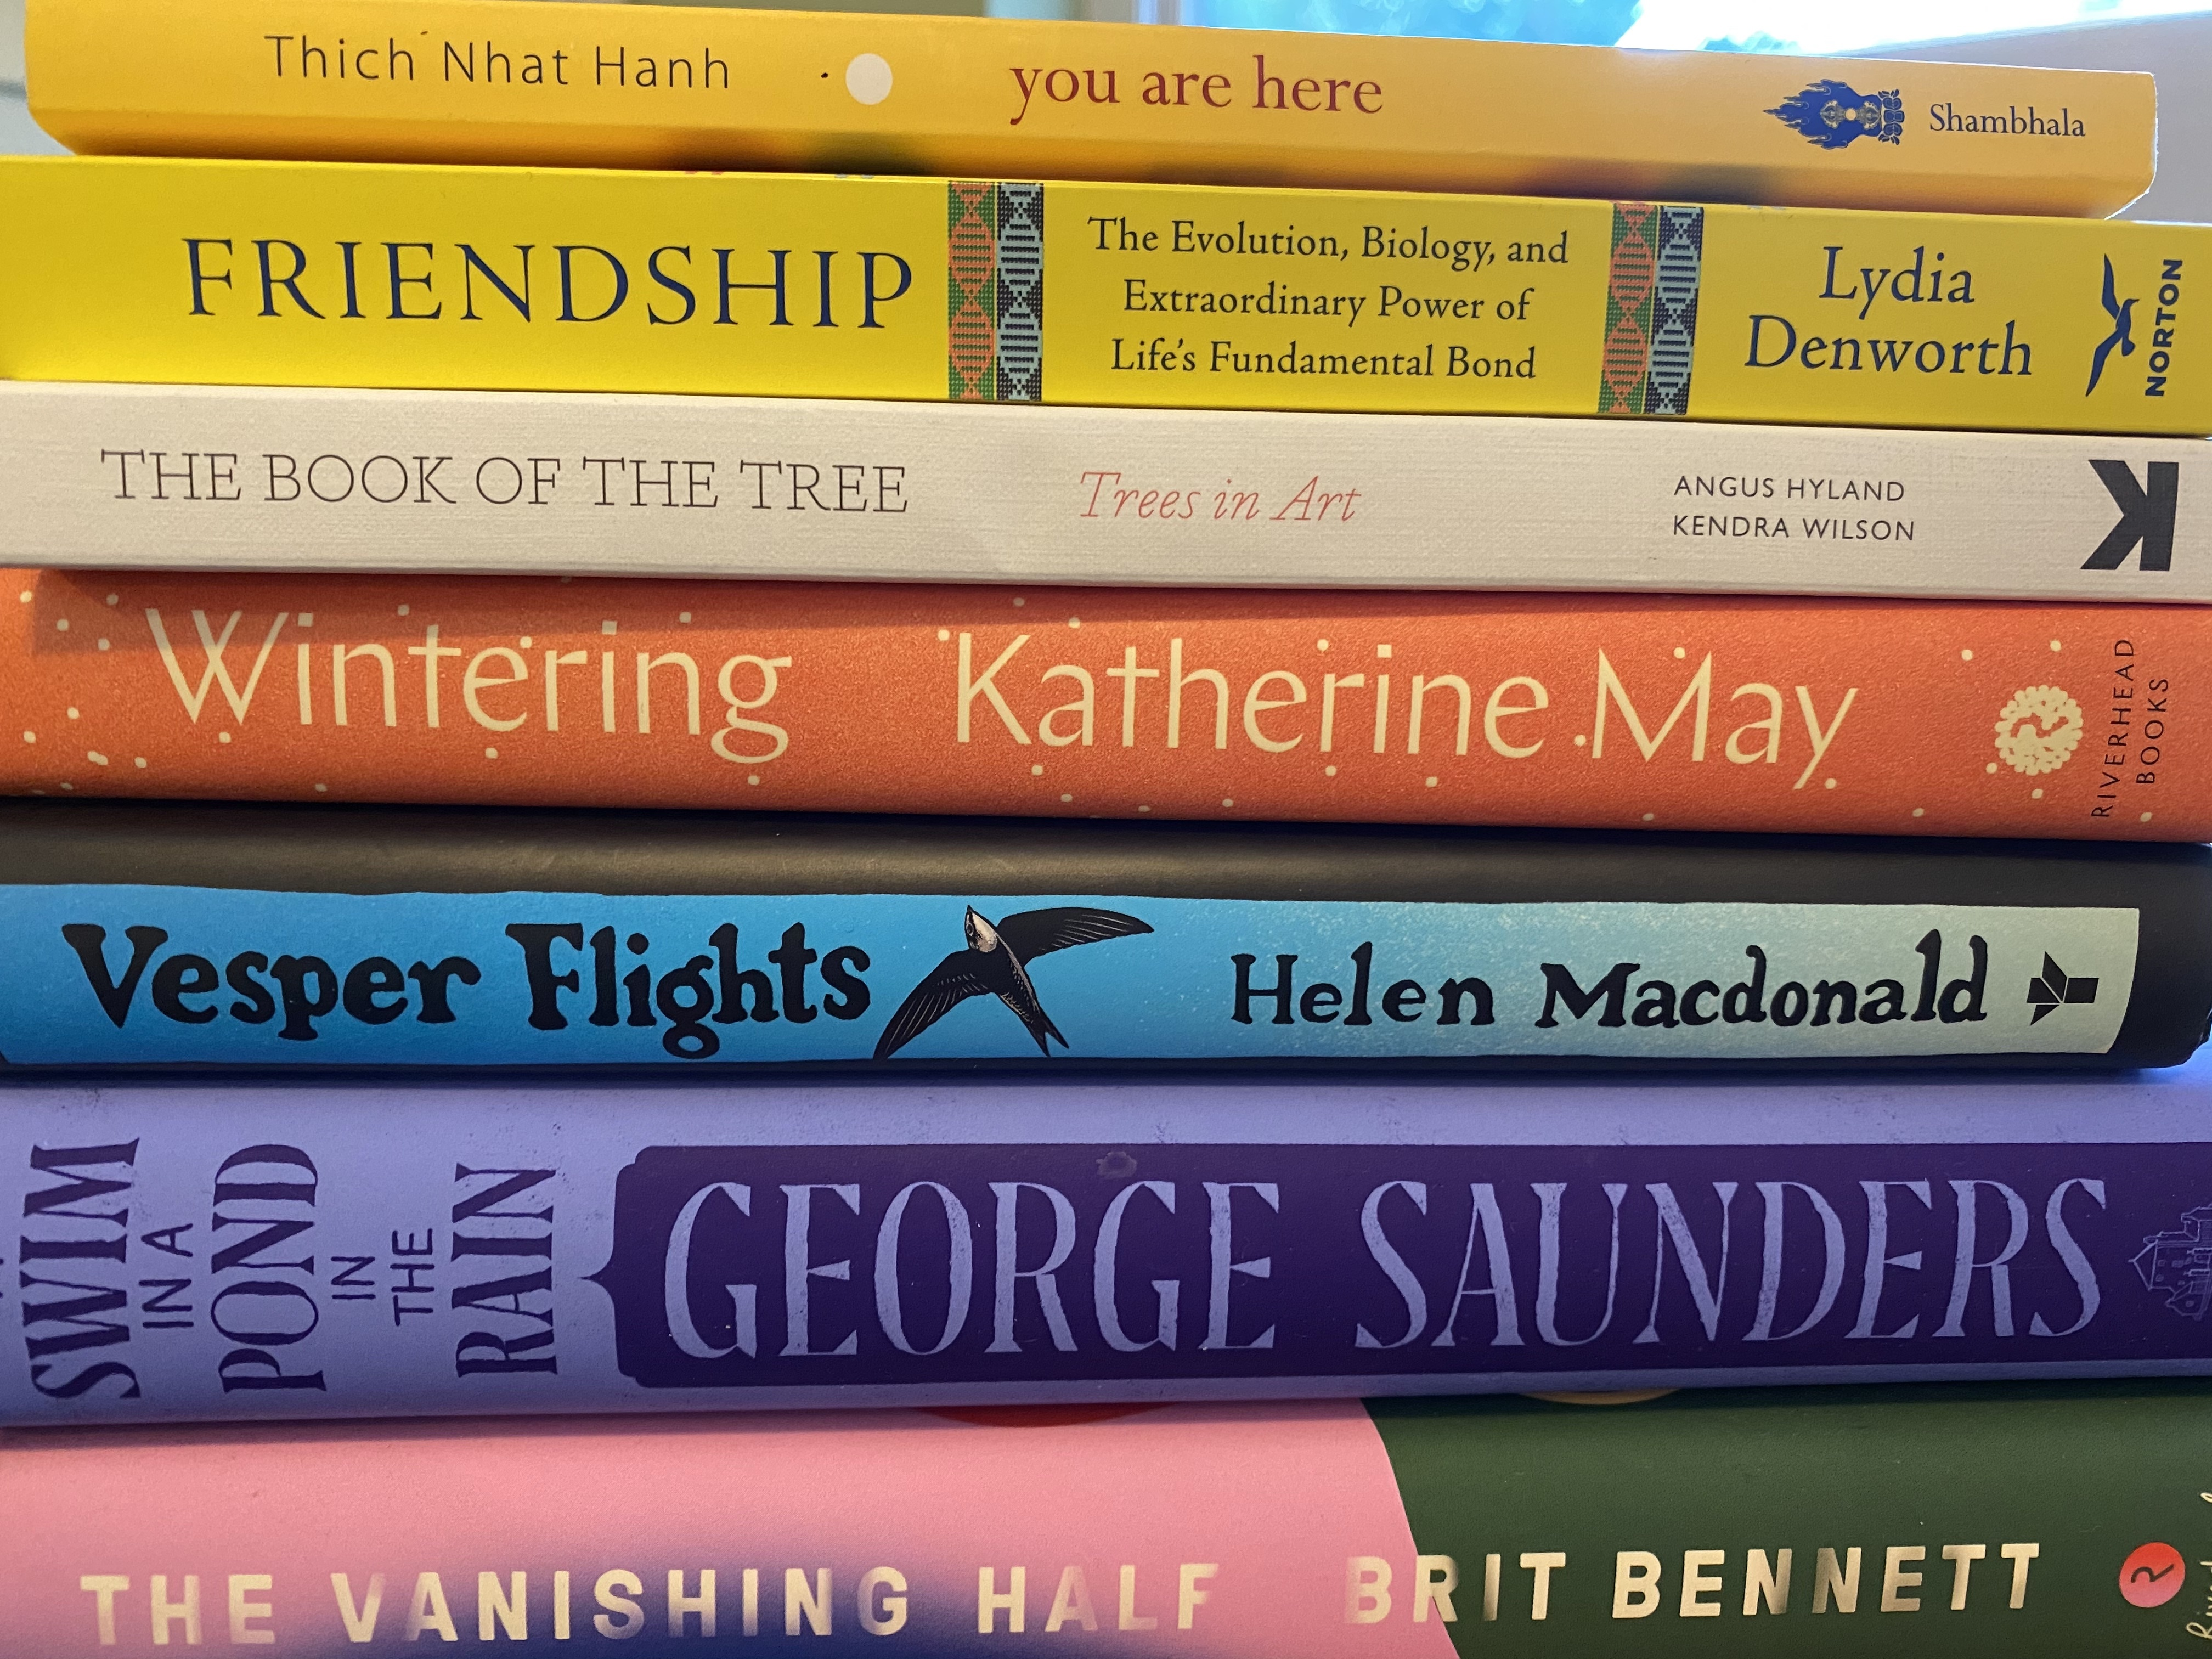 Books from The Toadstool Bookshop